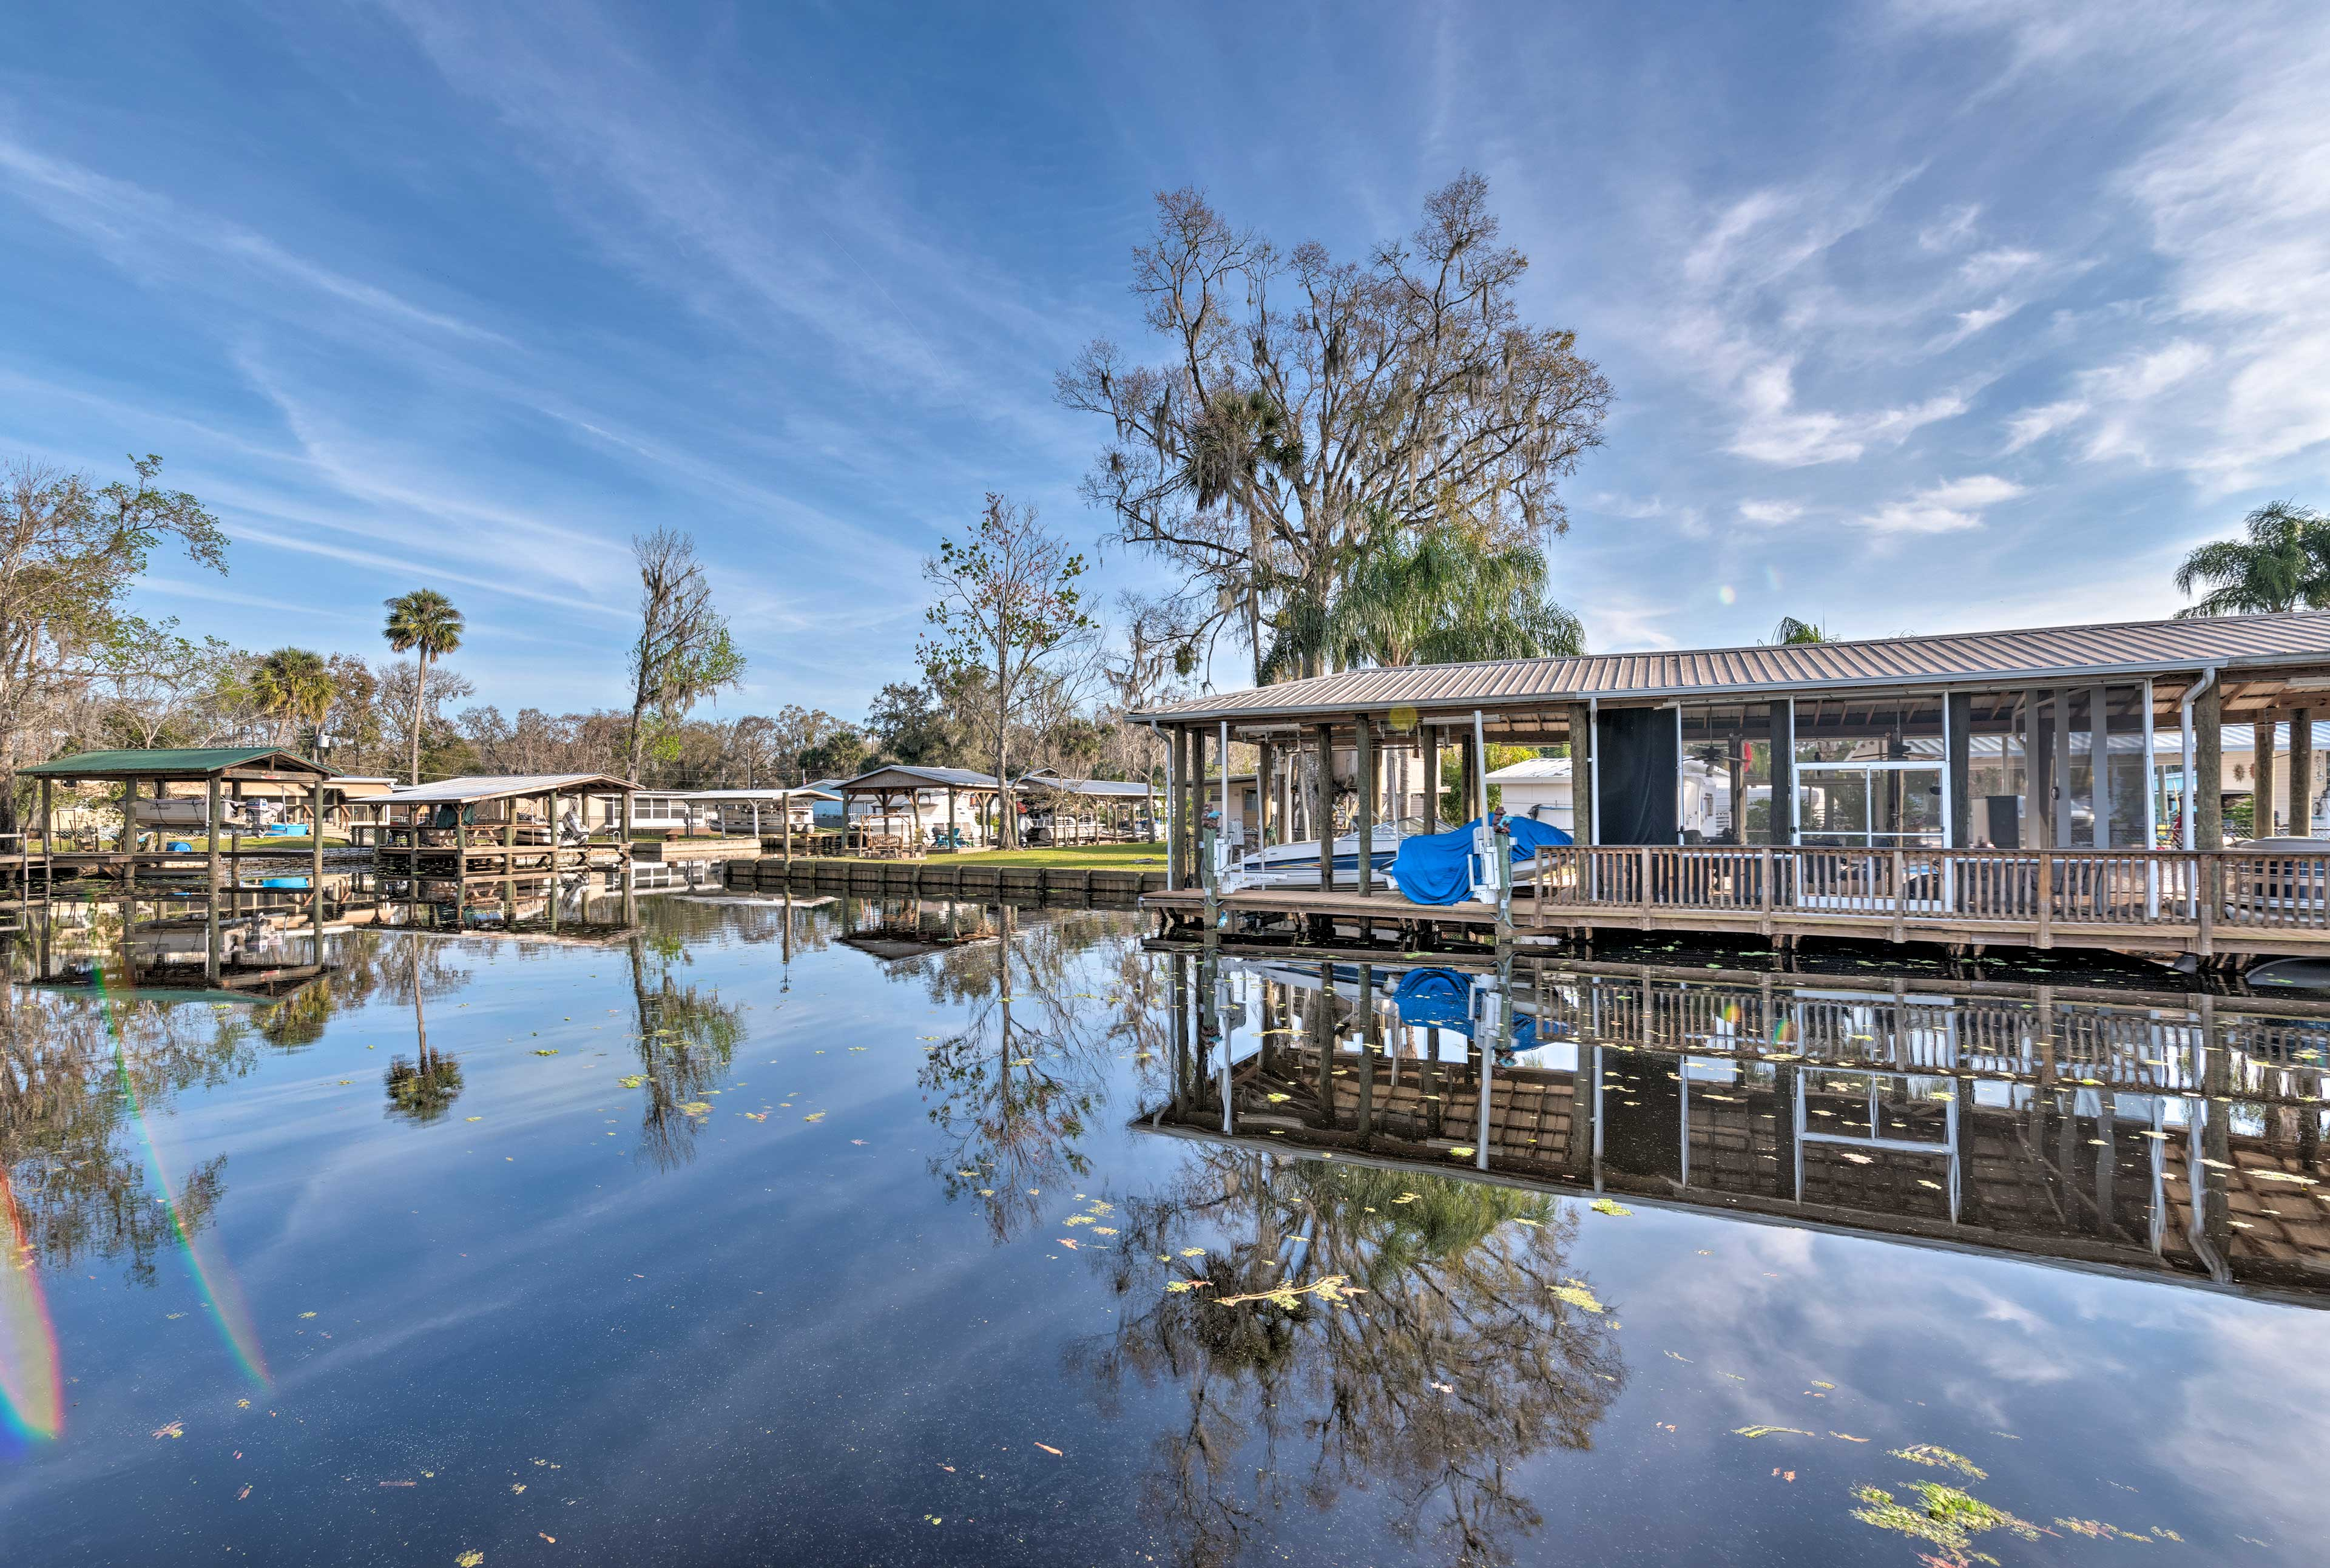 Head to the beach or stay here and enjoy the St. Johns River.